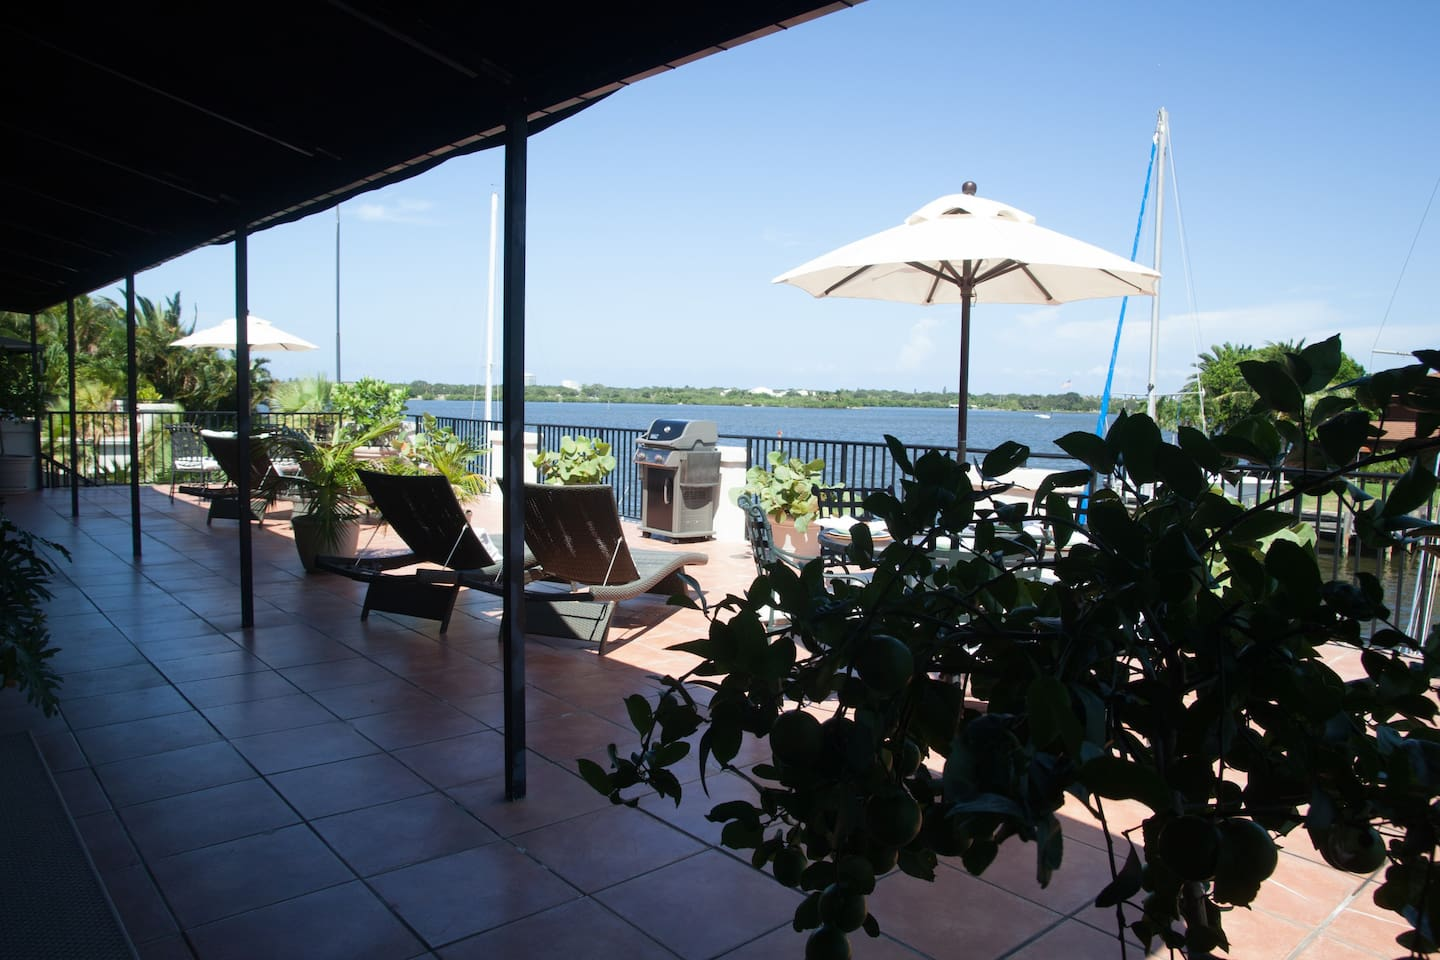 Panoramic view from the deck of the Intracoastal waterway~Just 2 miles over the bridge to the beach!